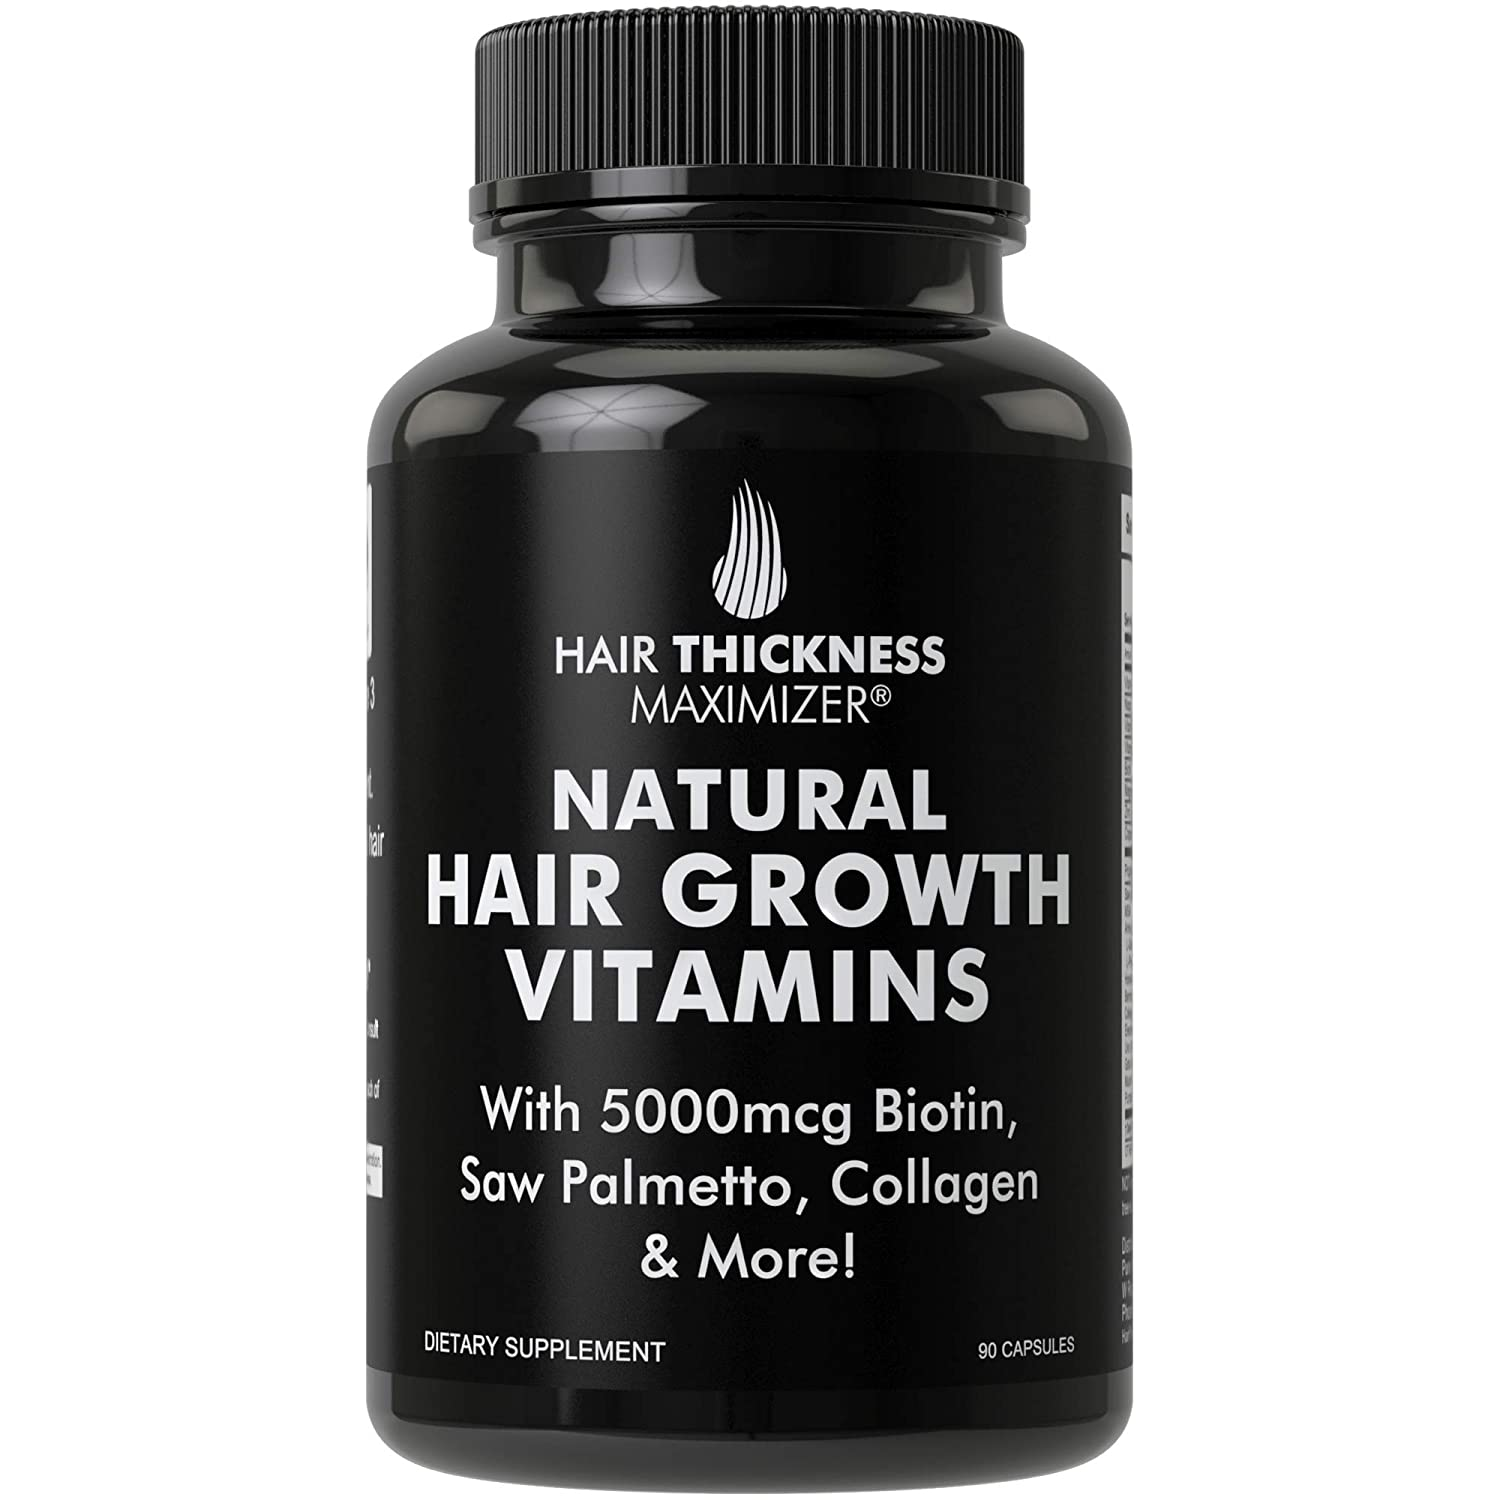 Hair Growth Vitamins >> Natural Hair Growth Vitamins By Hair Thickness Maximizer Hair Regrowth Vitamin Supplement With Biotin 5000 Mcg Collagen Saw Palmetto Stop Hair